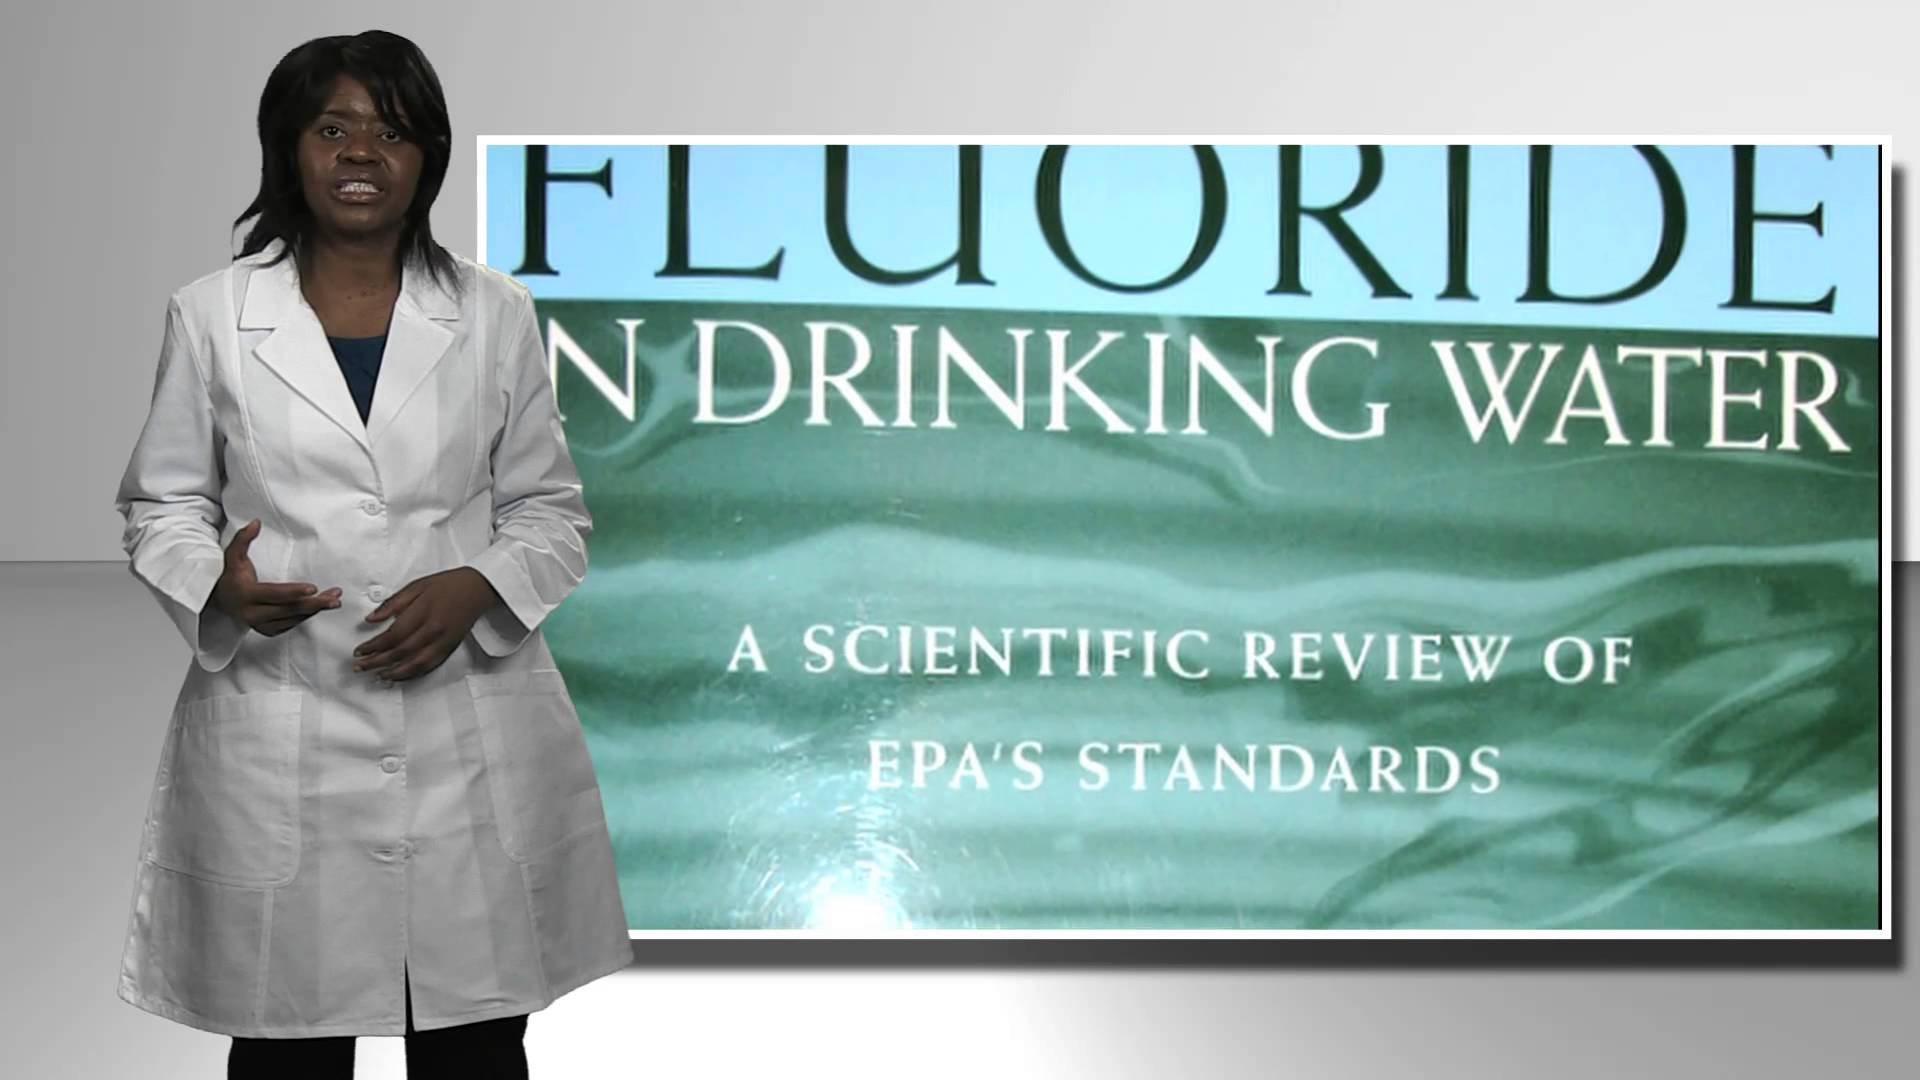 Dallas City Council Moves to Stop Water Fluoridation